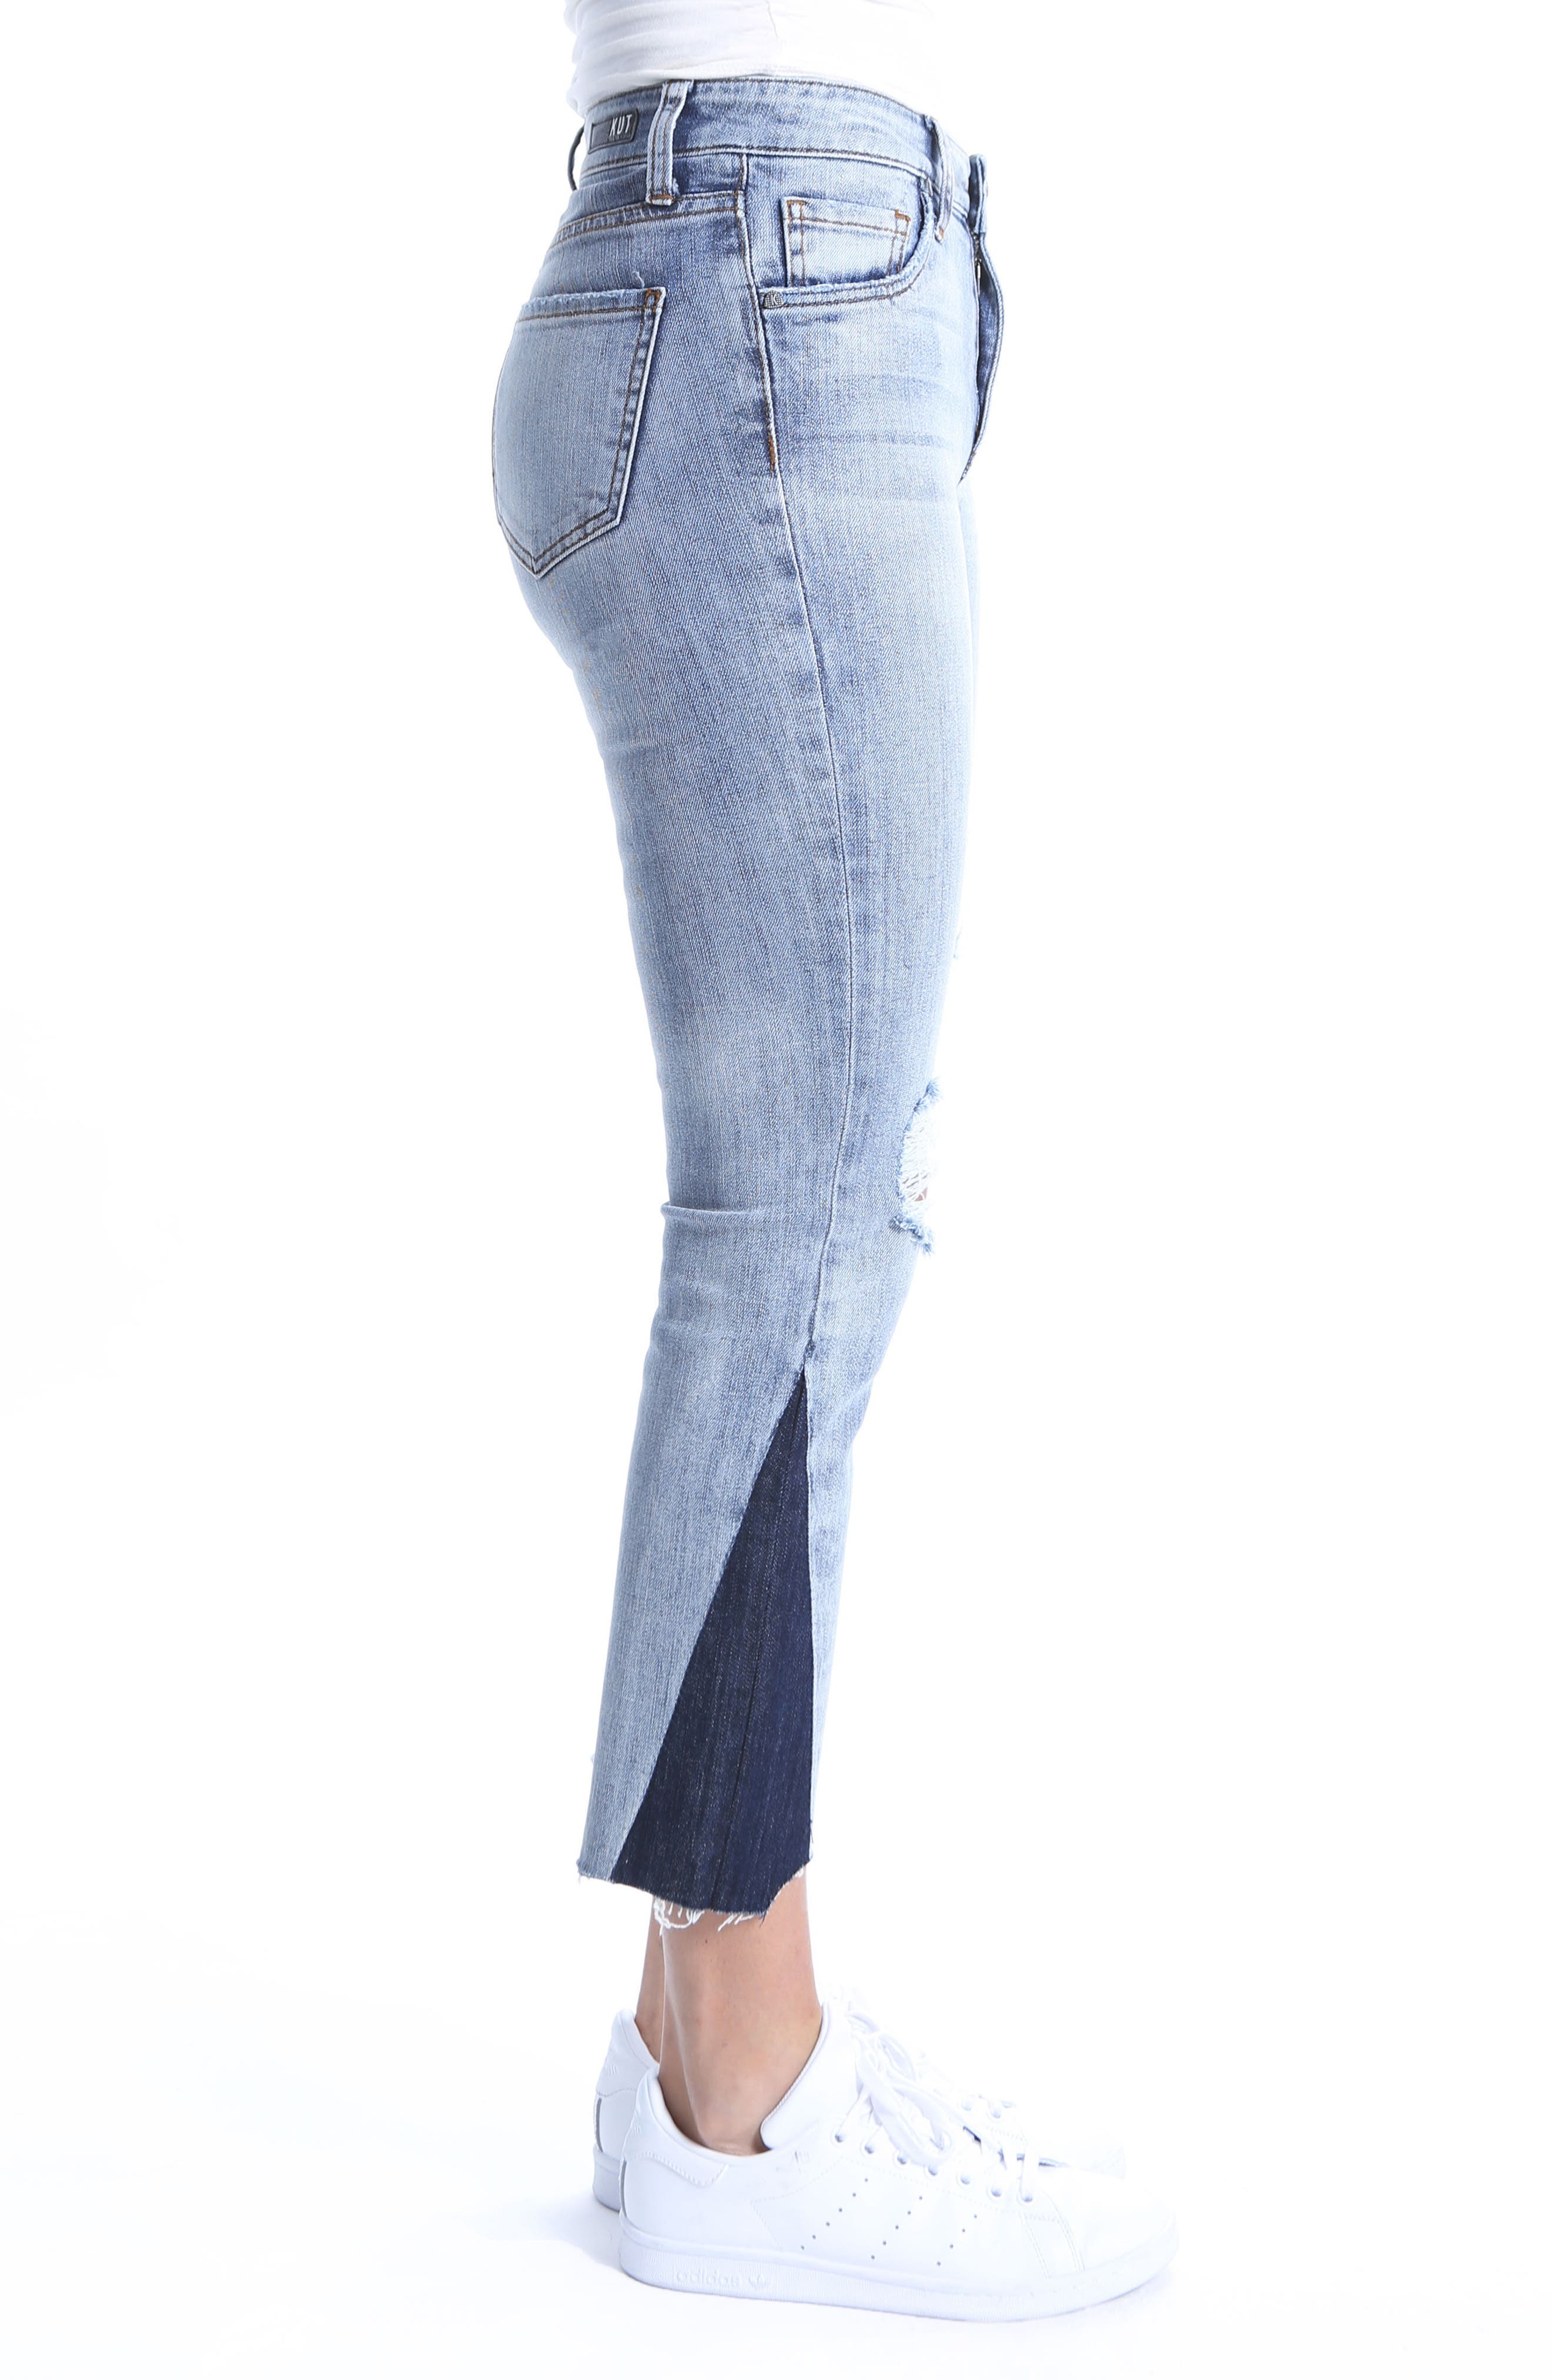 Reese Dark Flare Inset Straight Leg Ankle Jeans,                             Alternate thumbnail 3, color,                             Secured